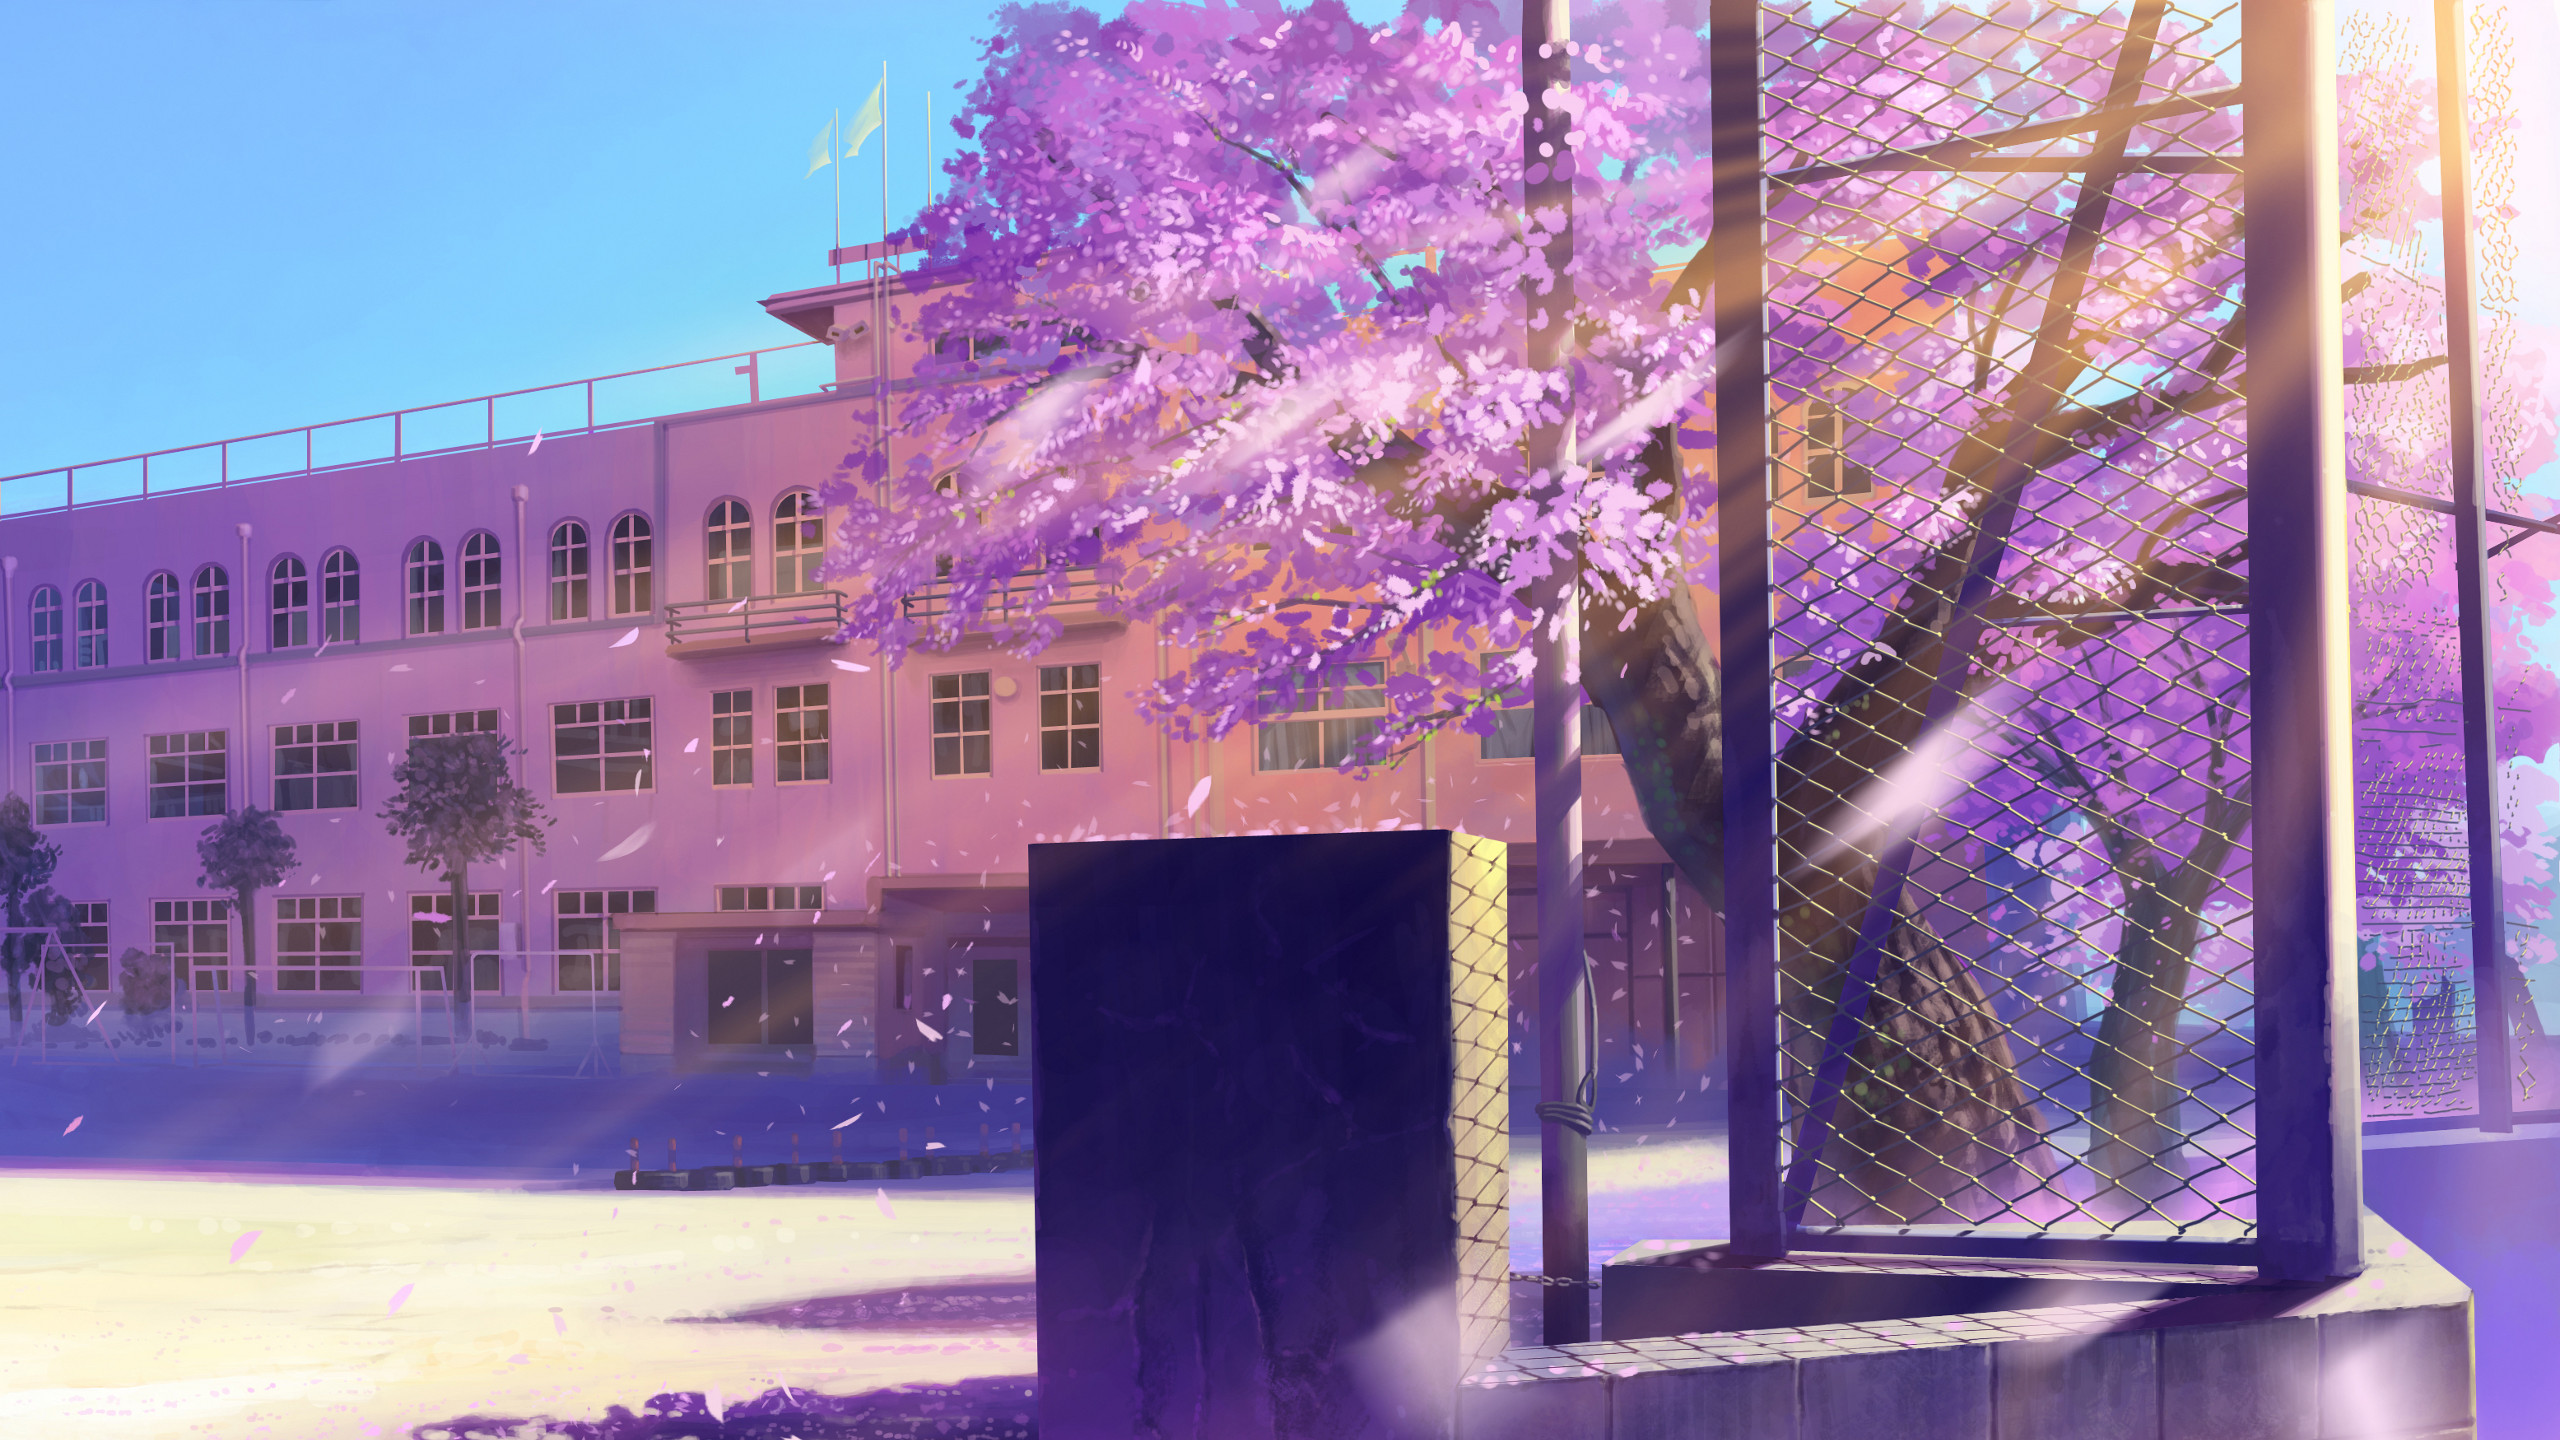 2560x1440 wallpaper.wiki-Anime-Cherry-Blossom-Background-for-PC-